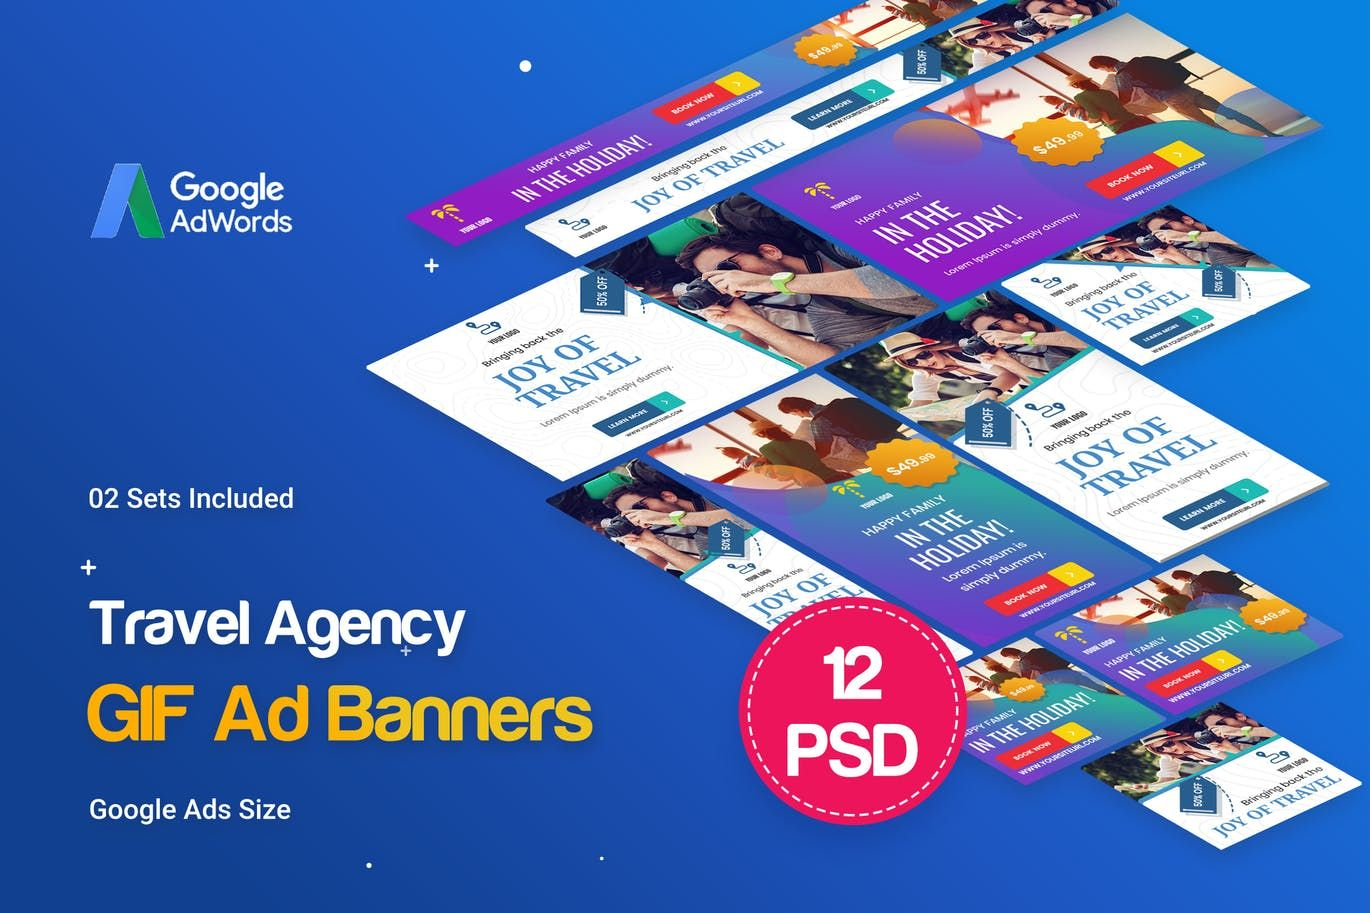 Animated gif travel agency banners ad by idoodle on